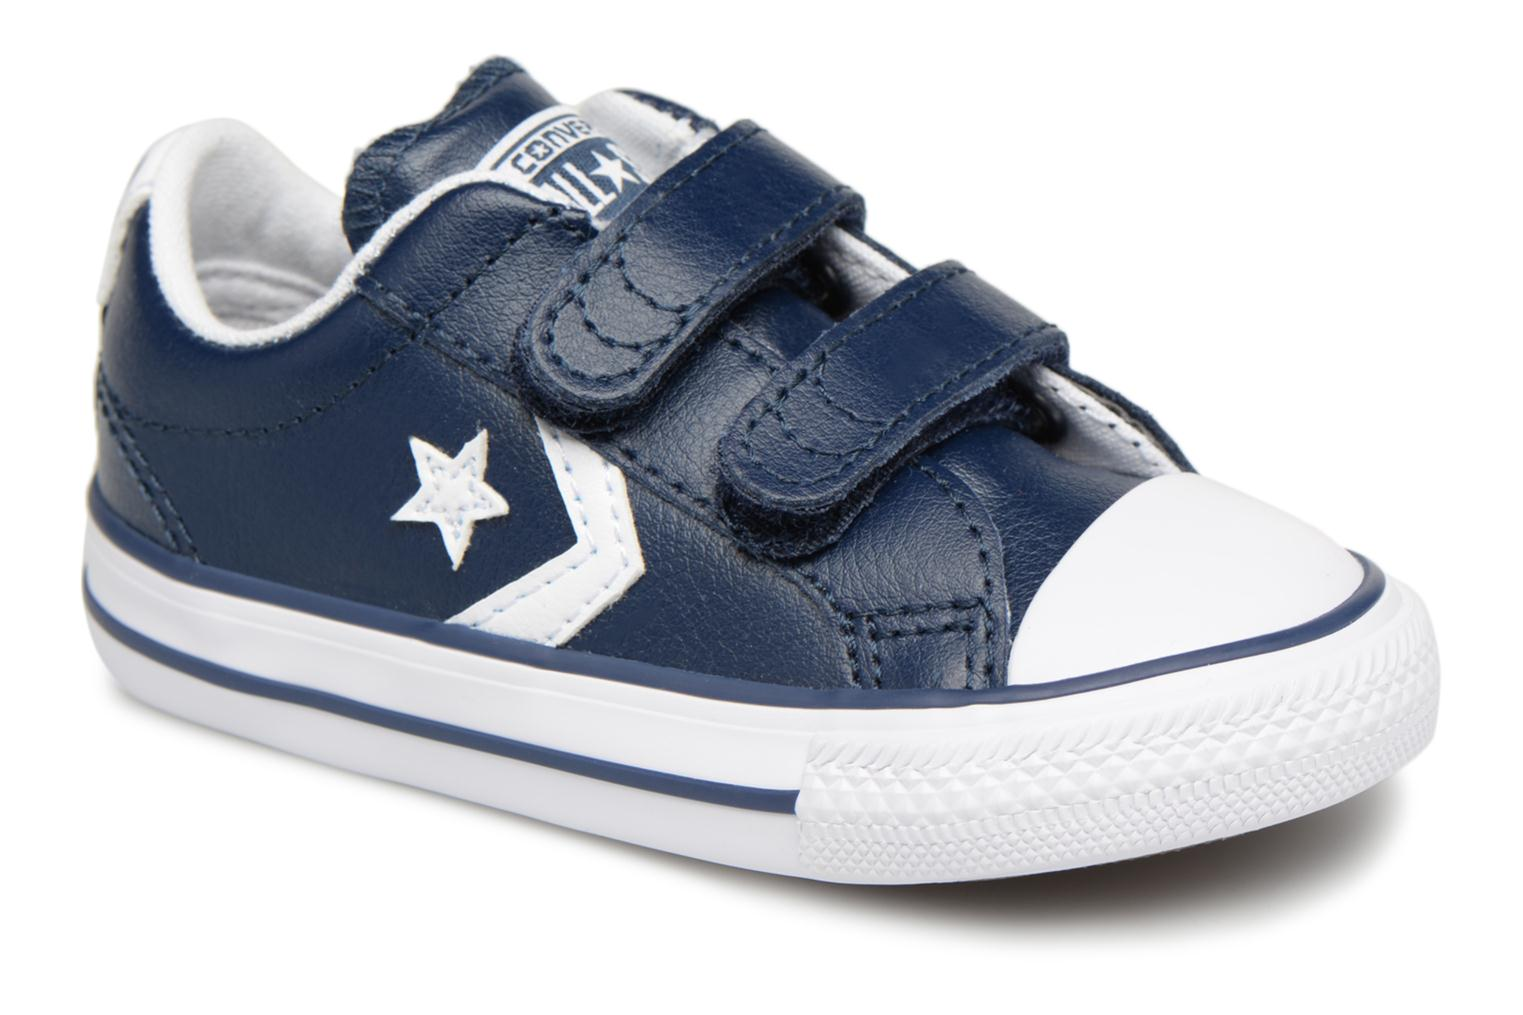 Sneakers Star Player EV 2V Back To School Ox by ConverseConverseBlauwPaar schoenen - Sneakers88695516624019Leer